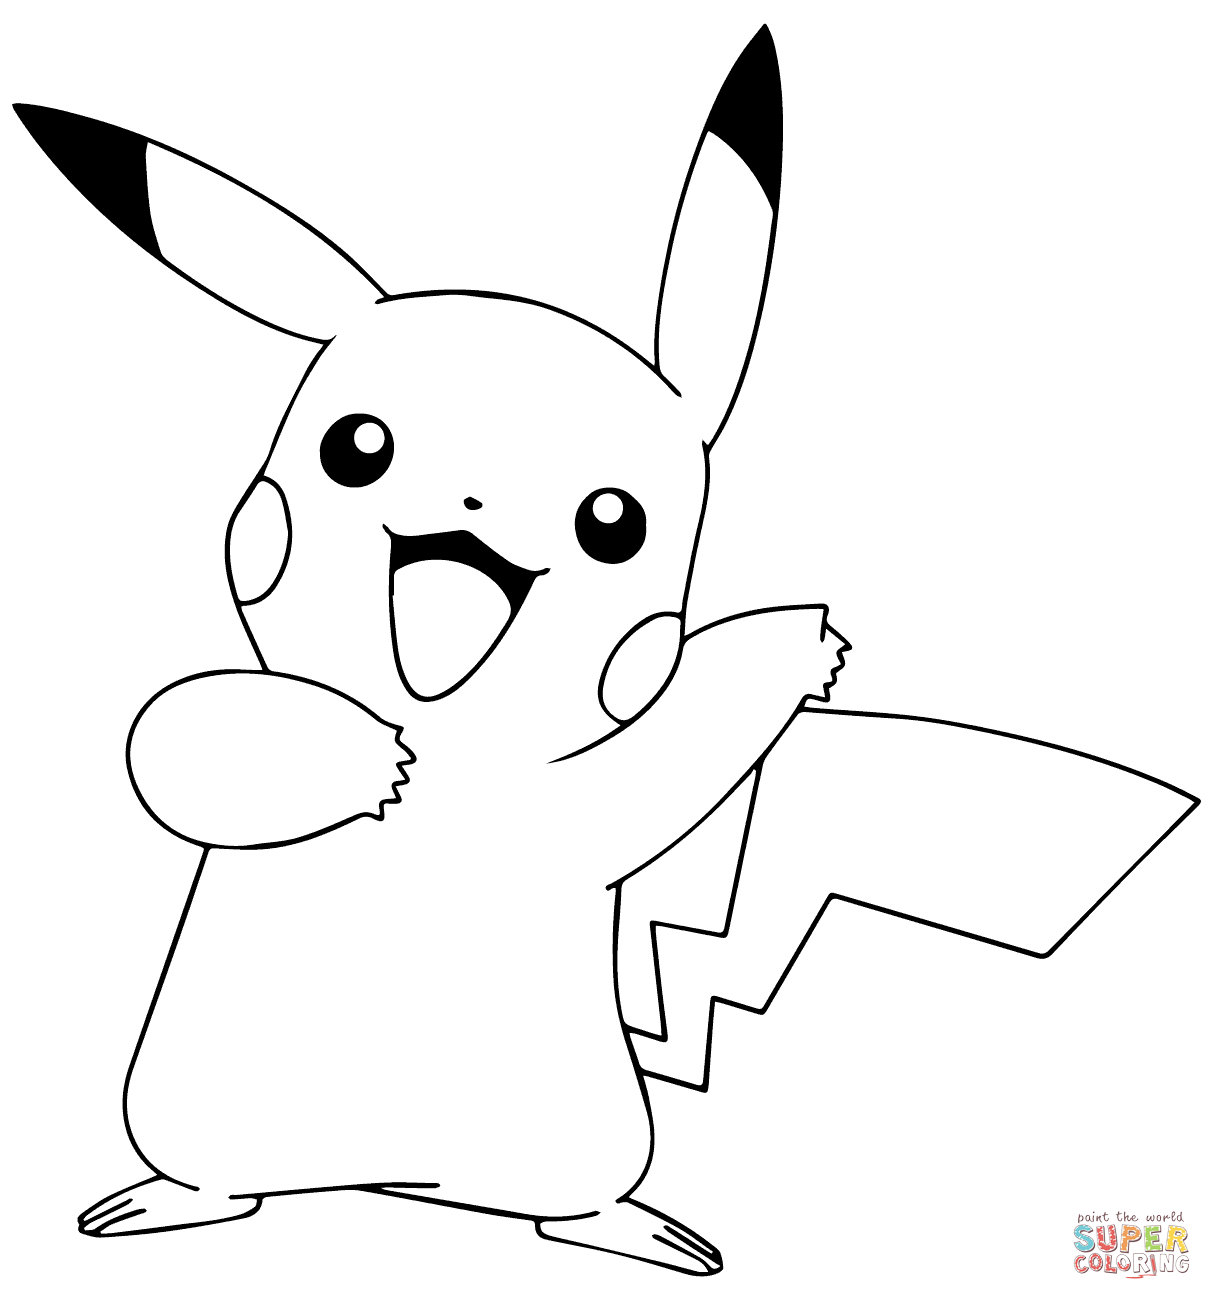 picachu coloring pages pikachu coloring pages free large images pages picachu coloring